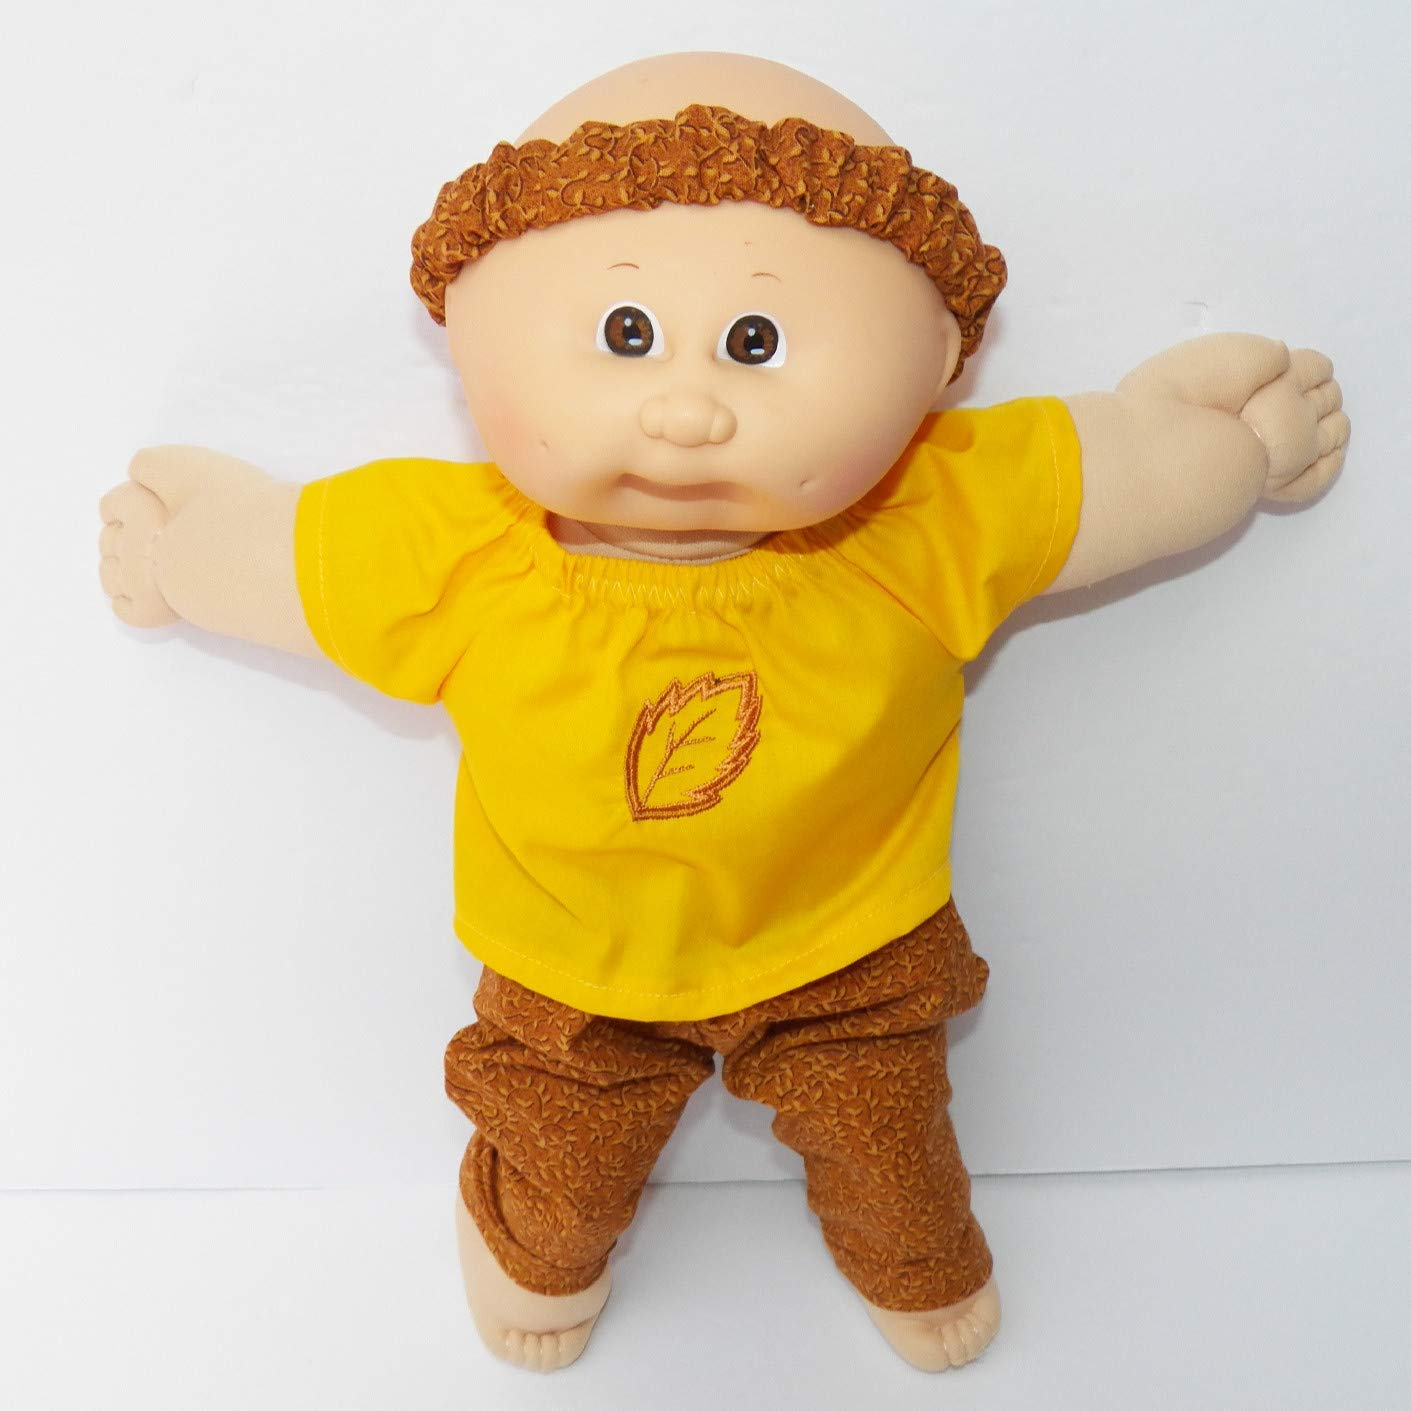 Cabbage Patch Doll Clothes Fits 14 Inch Girl or Preemie Includes One Yellow Fall Embroidered Blouse Pants Headband No Doll